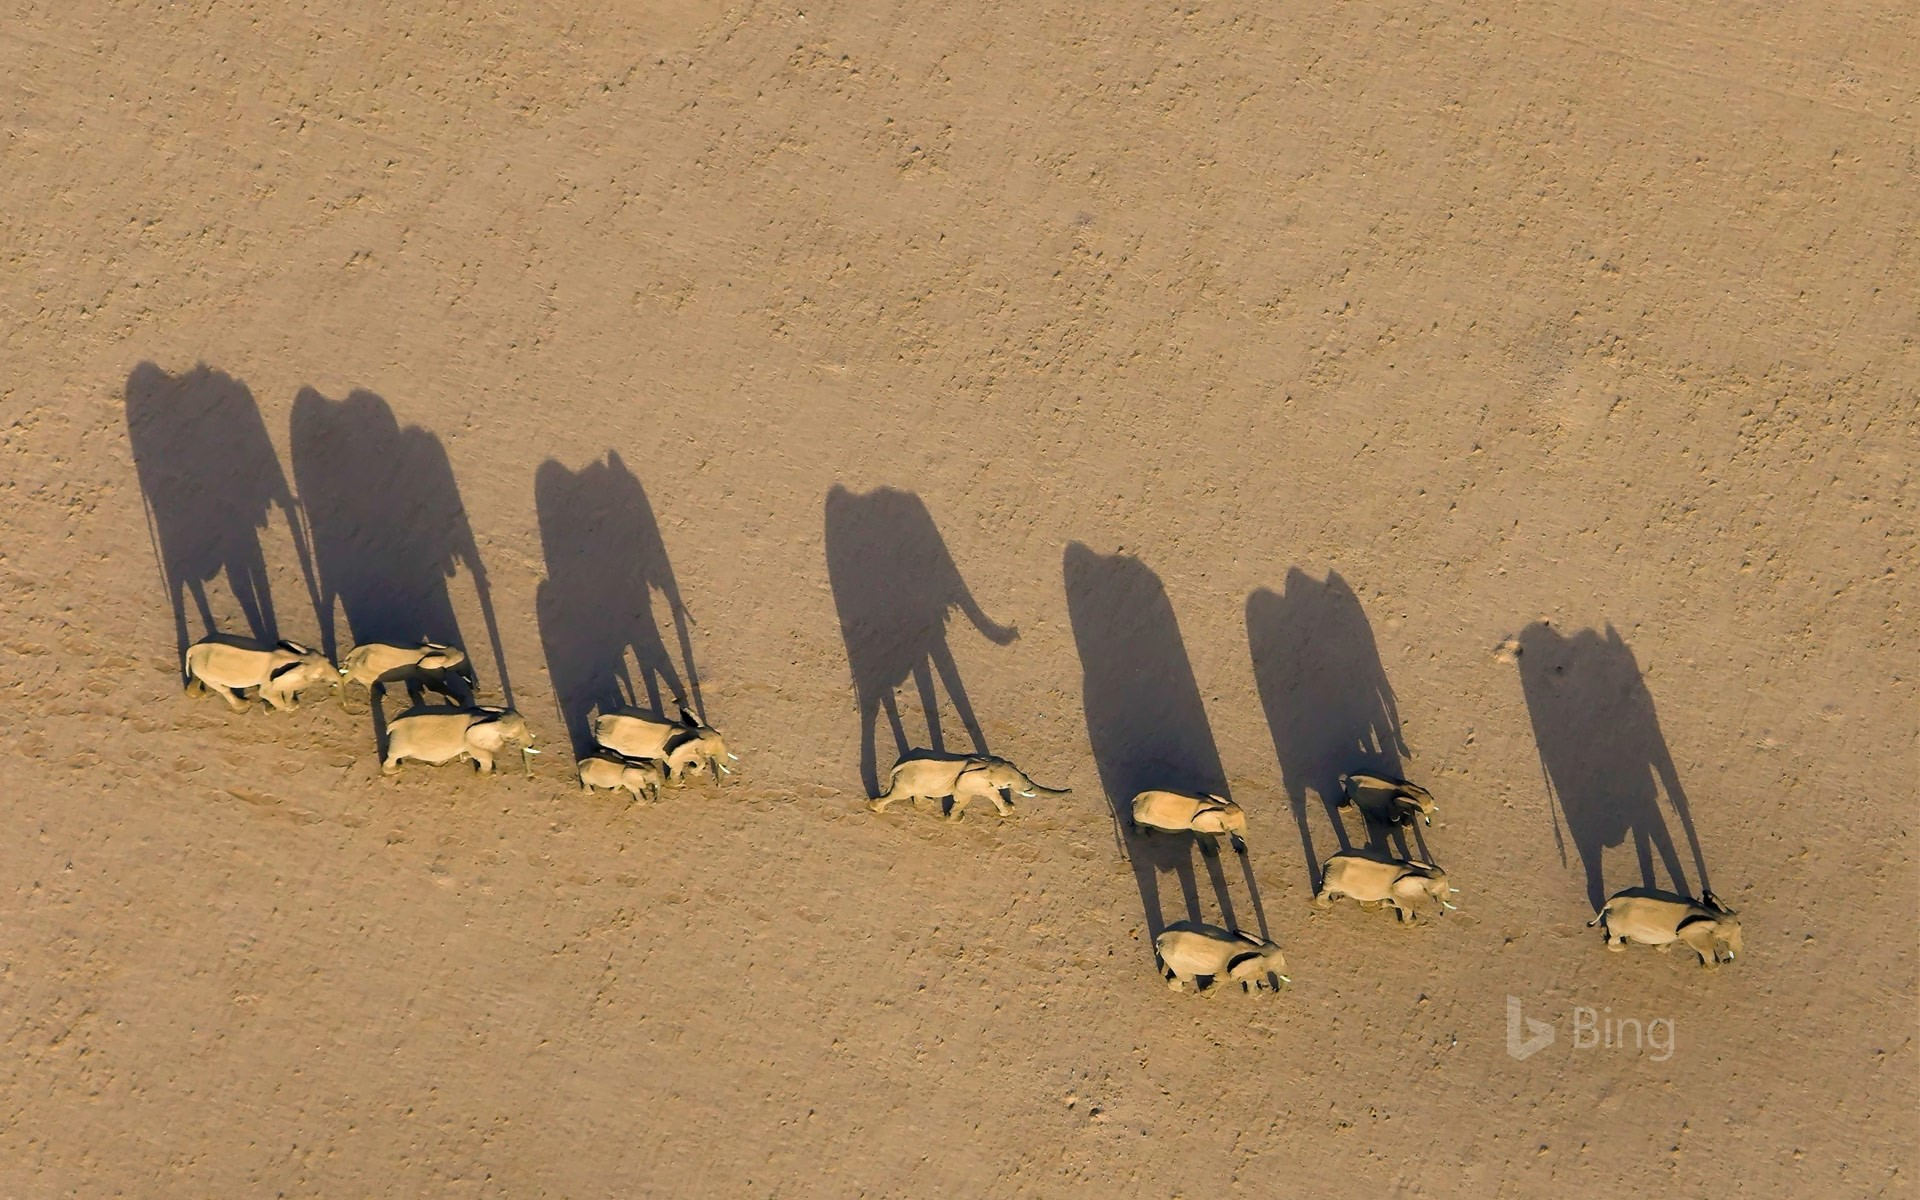 Elephant herd in Damaraland District, Namibia (© Michael Poliza/Getty Images)